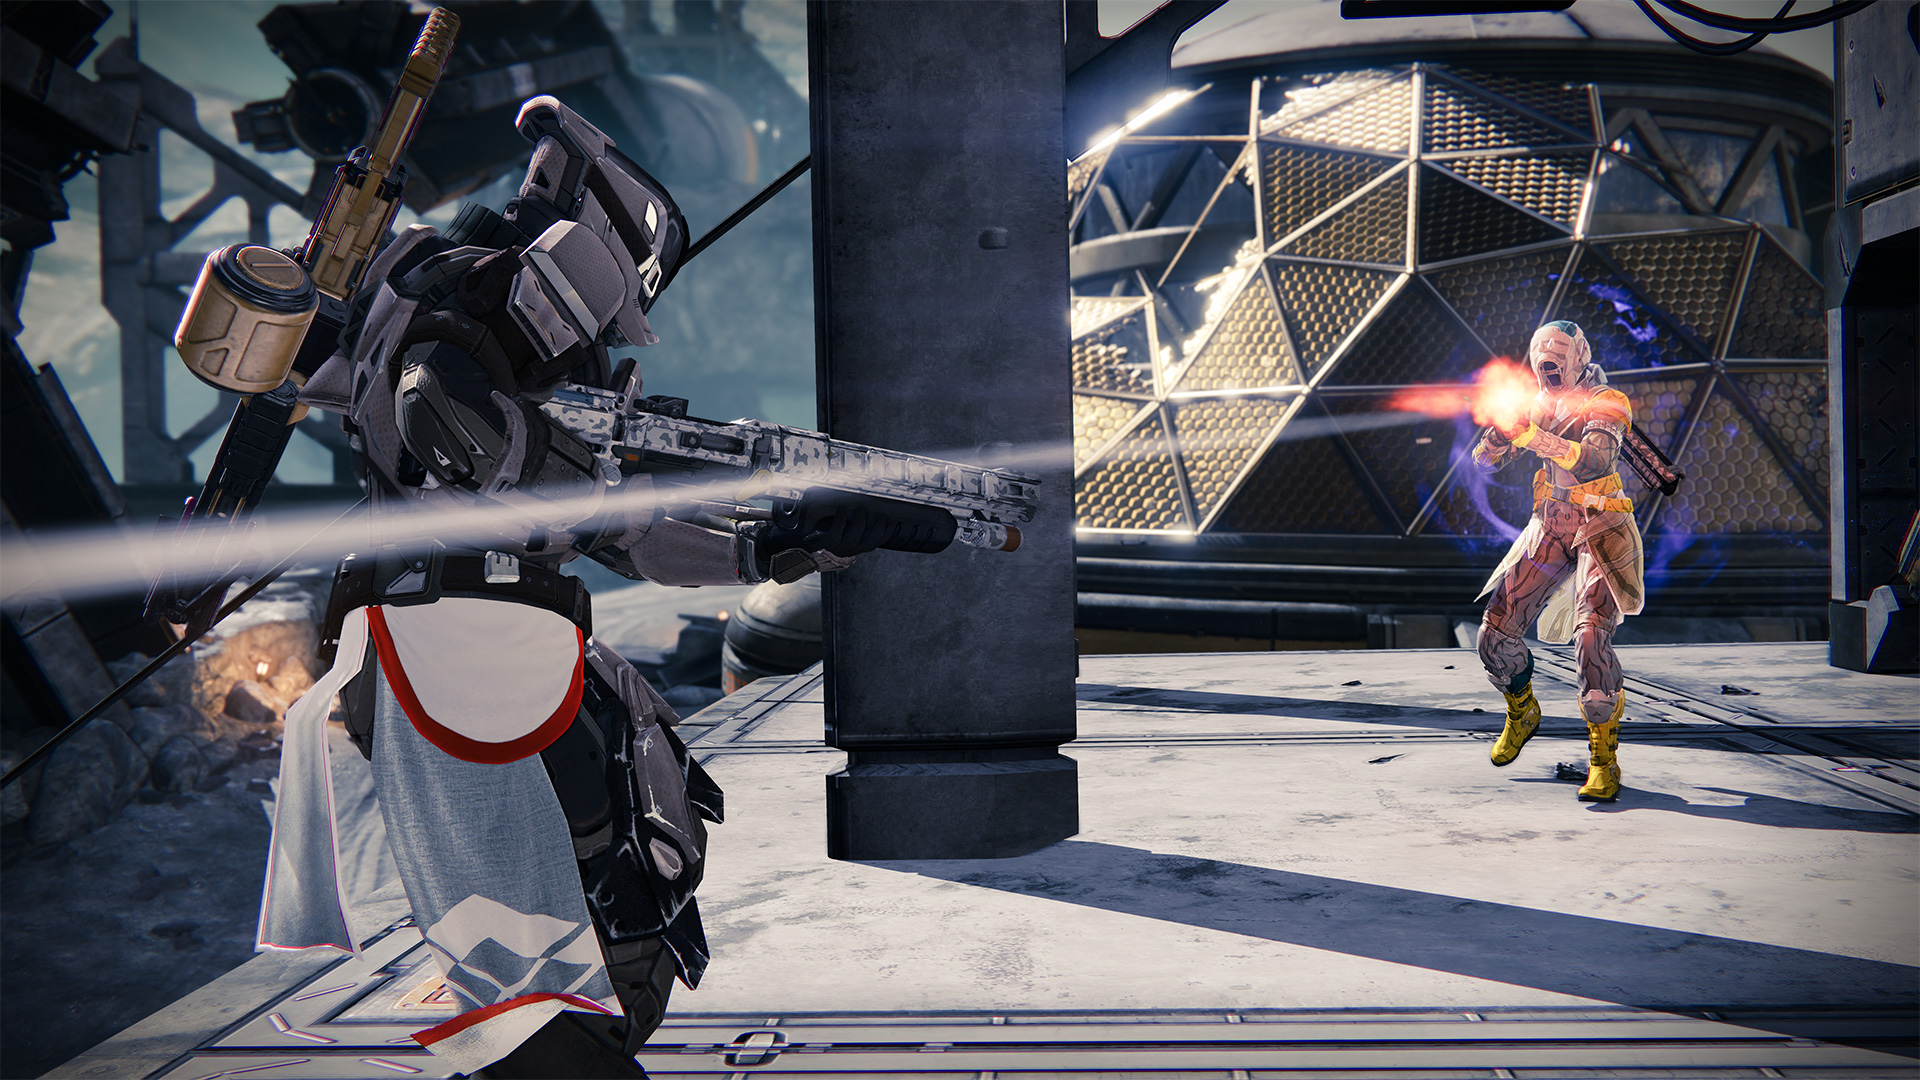 Destiny's shotguns are getting nerfed in a drastic way